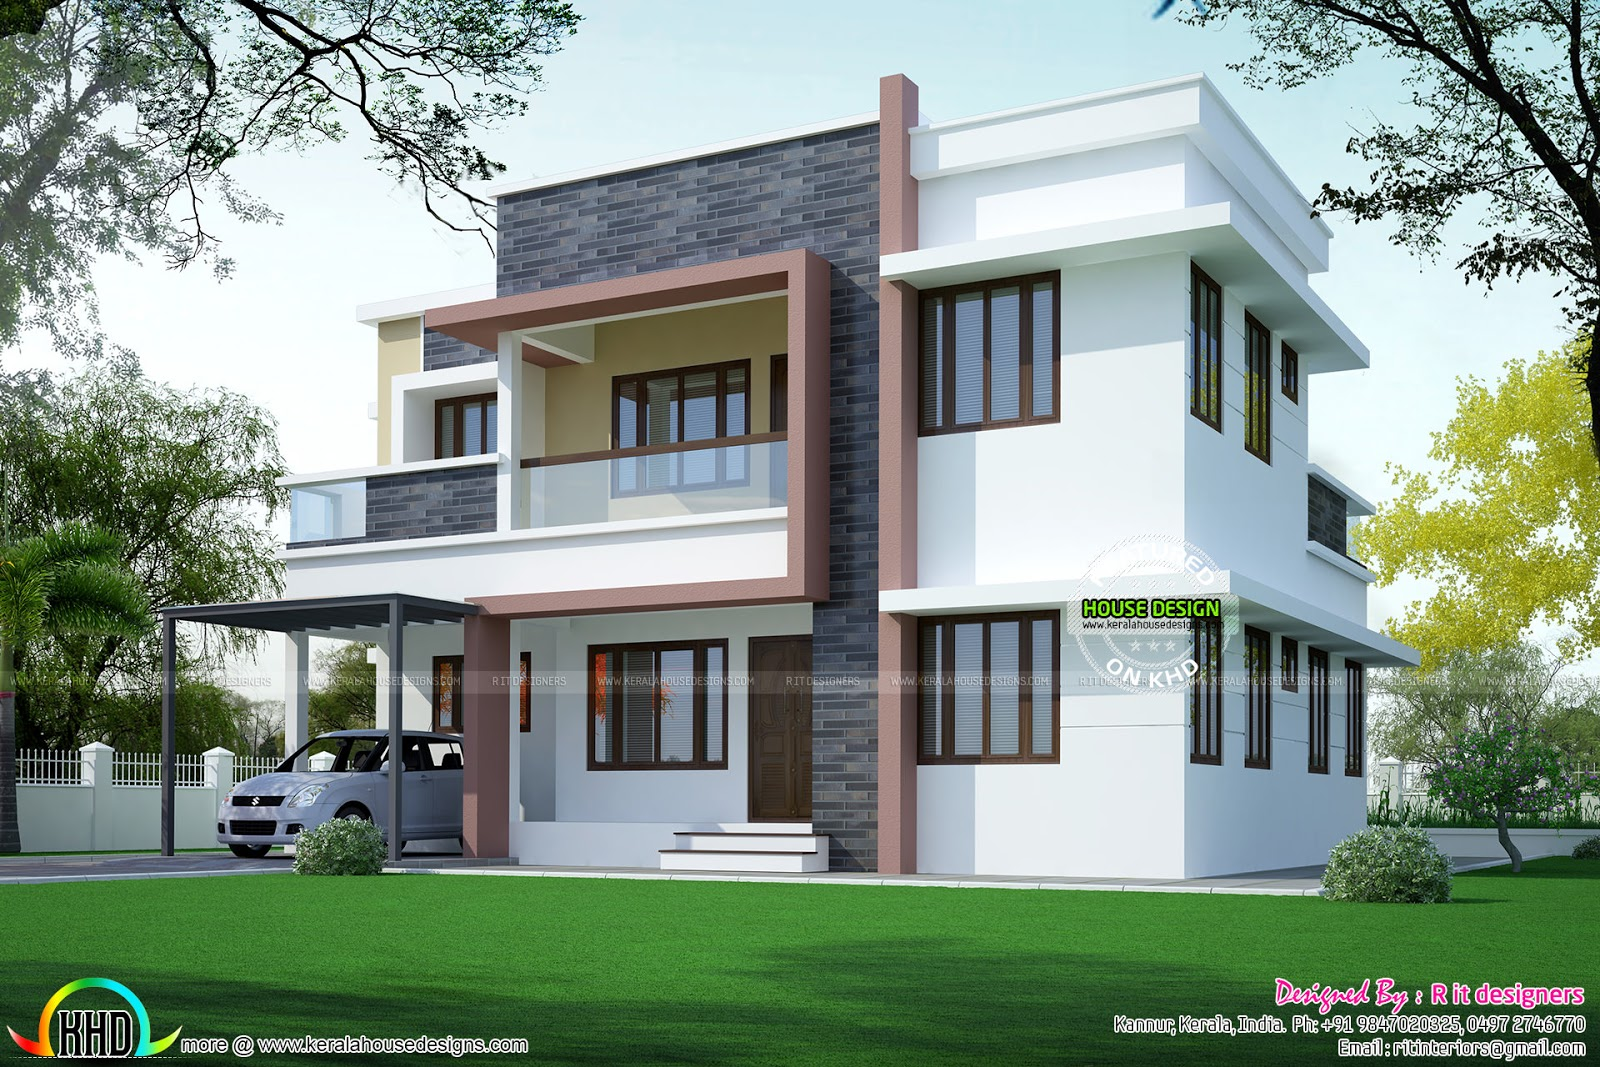 Simple home plan in modern style kerala home design and for Simple home plans free